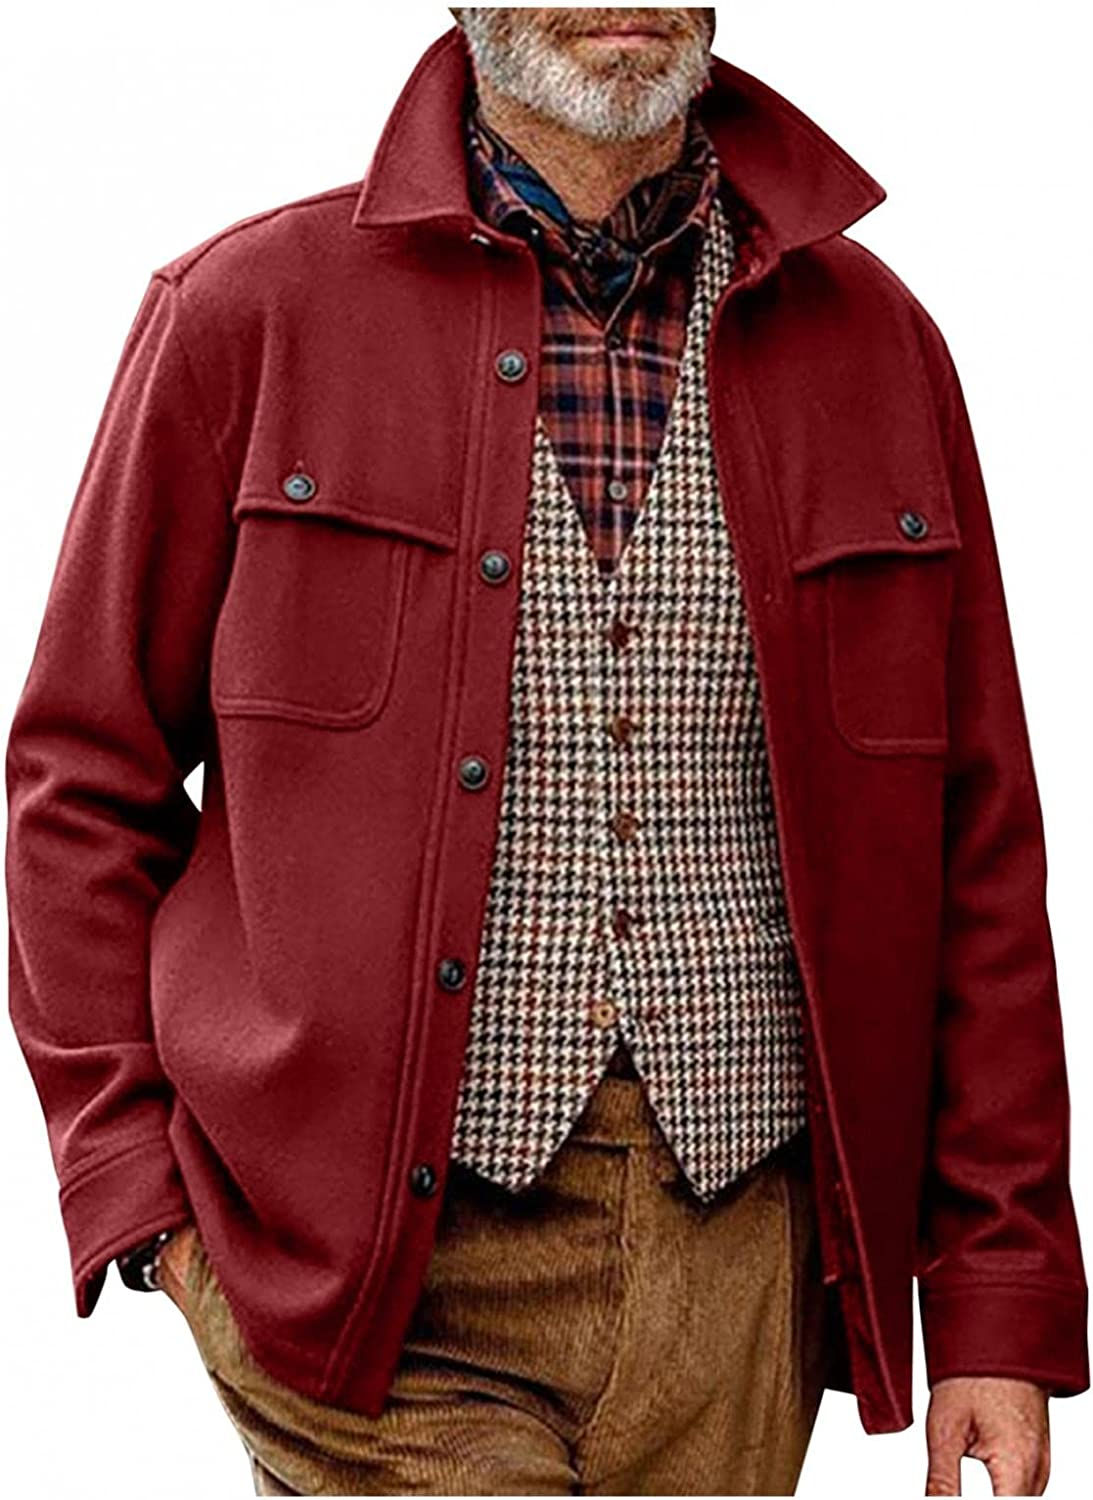 FUNEY Jackets for Men Stand Collar Wool Blend Single Breasted Military Pea Coat Loose Casual Autumn and Winter Clothing